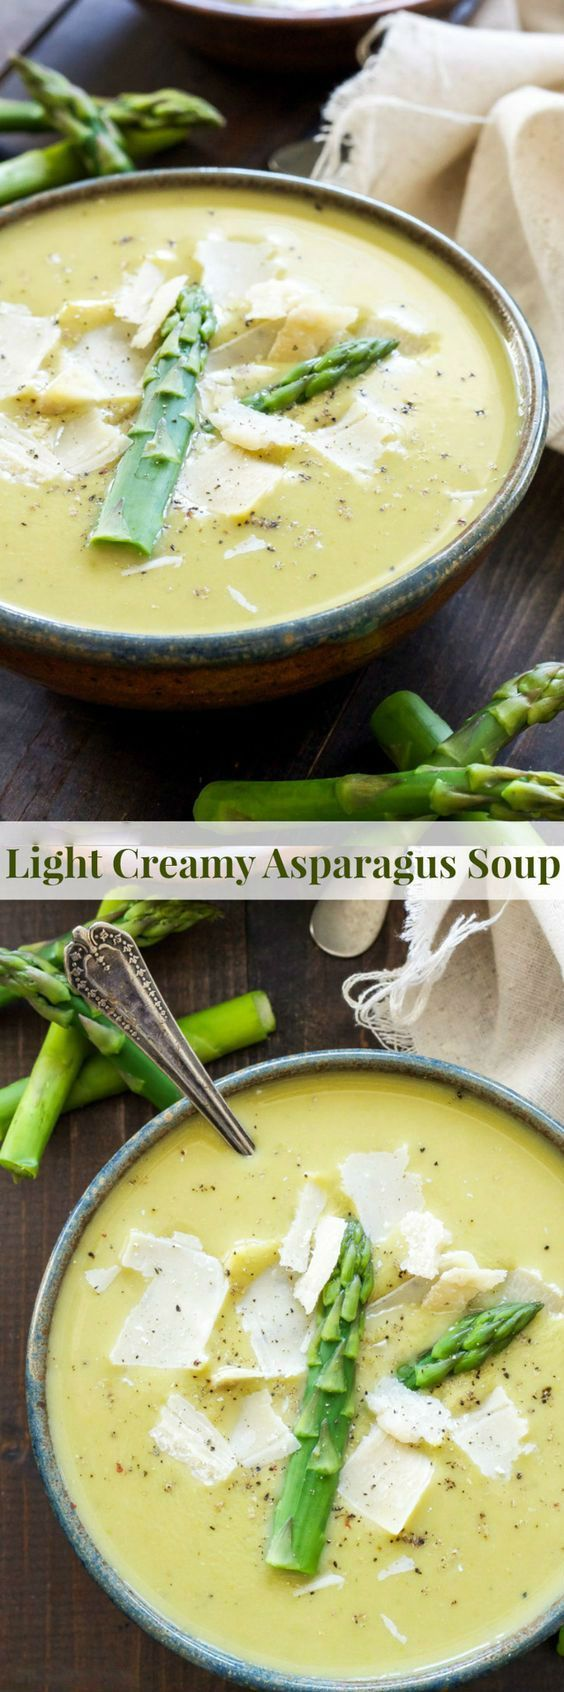 Take advantage of spring produce and make this Light Creamy Asparagus Soup! Loaded with fresh asparagus, leeks, peas and Greek yogurt to make it creamy, but also keeping it light and healthy! Color…